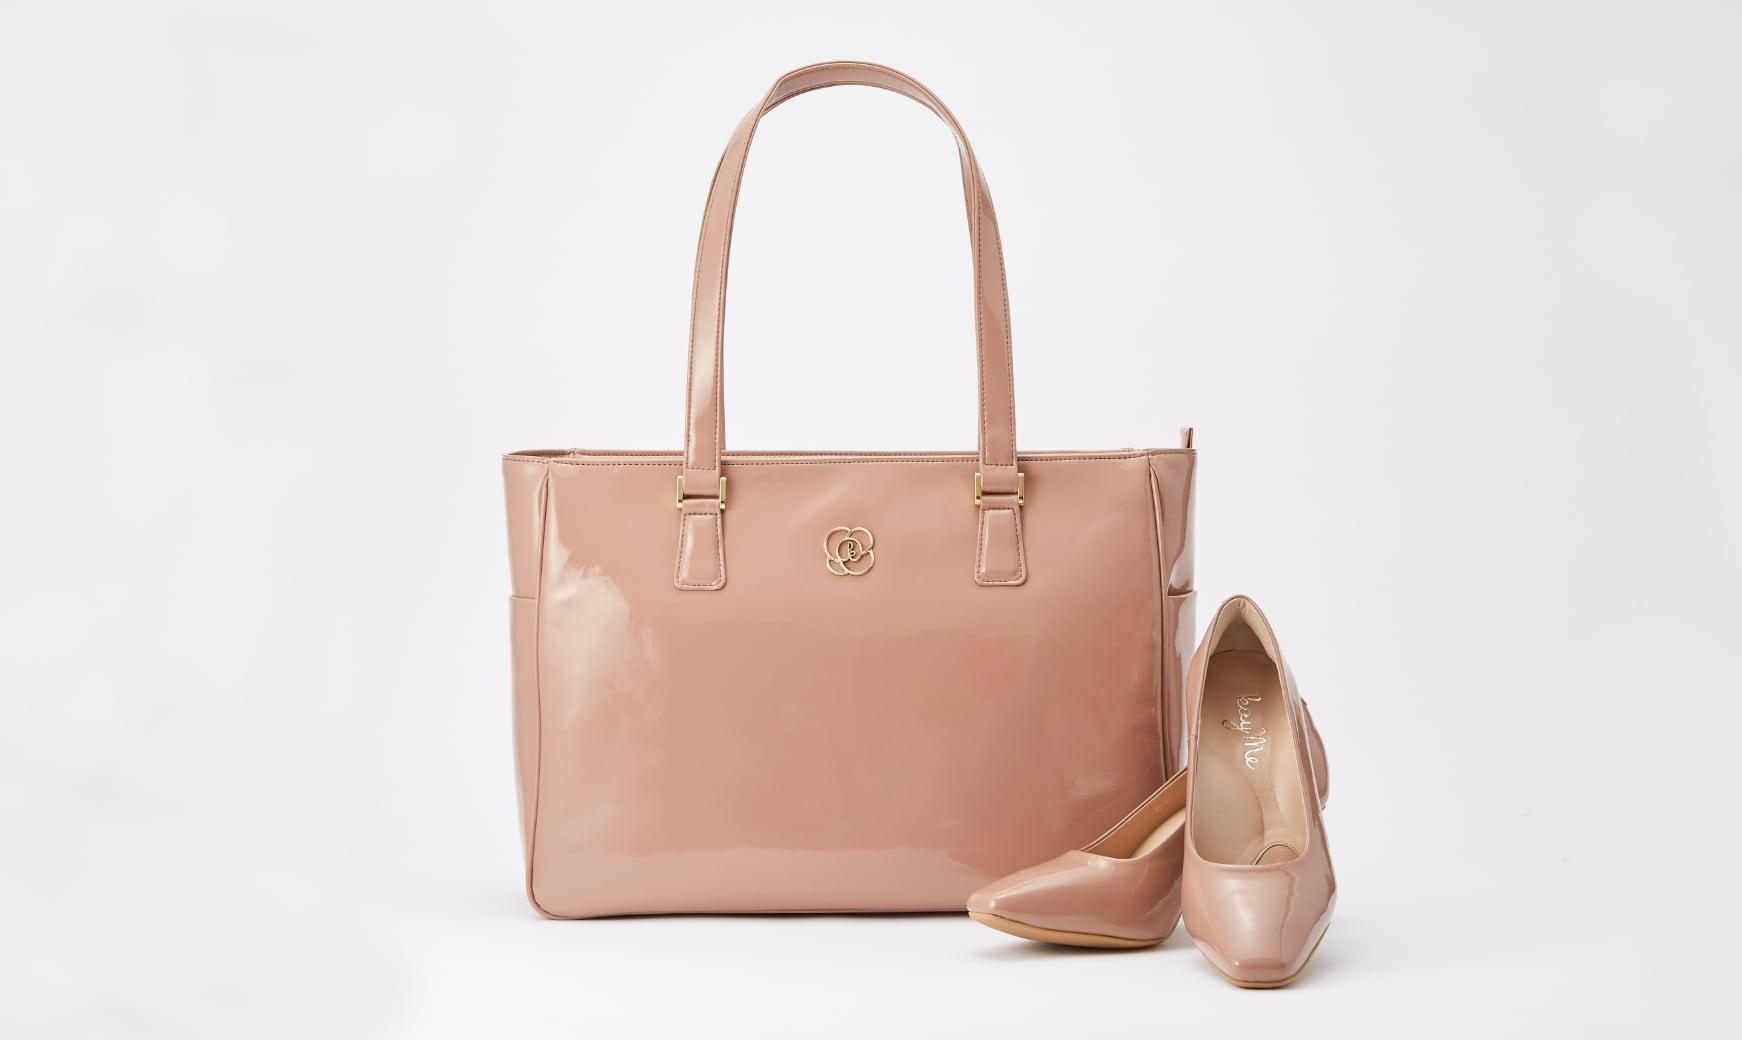 09_Airy_Tote_and_Puni_Puni_Pumps.jpg